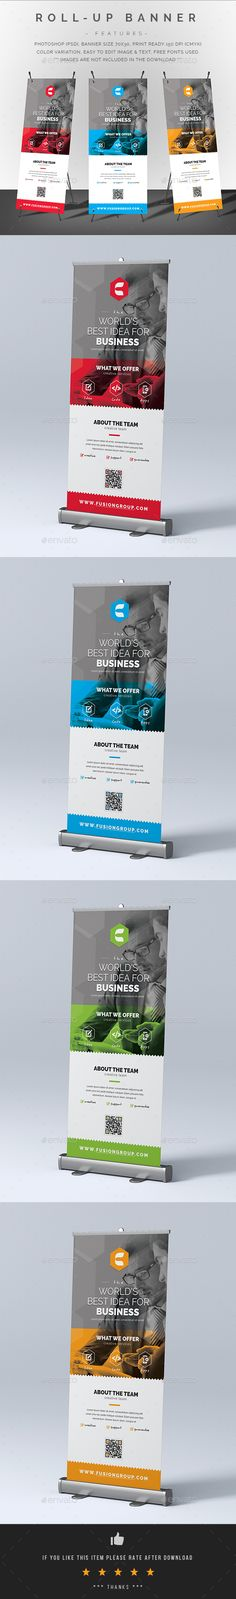 Corporate Roll-Up Banner Template PSD